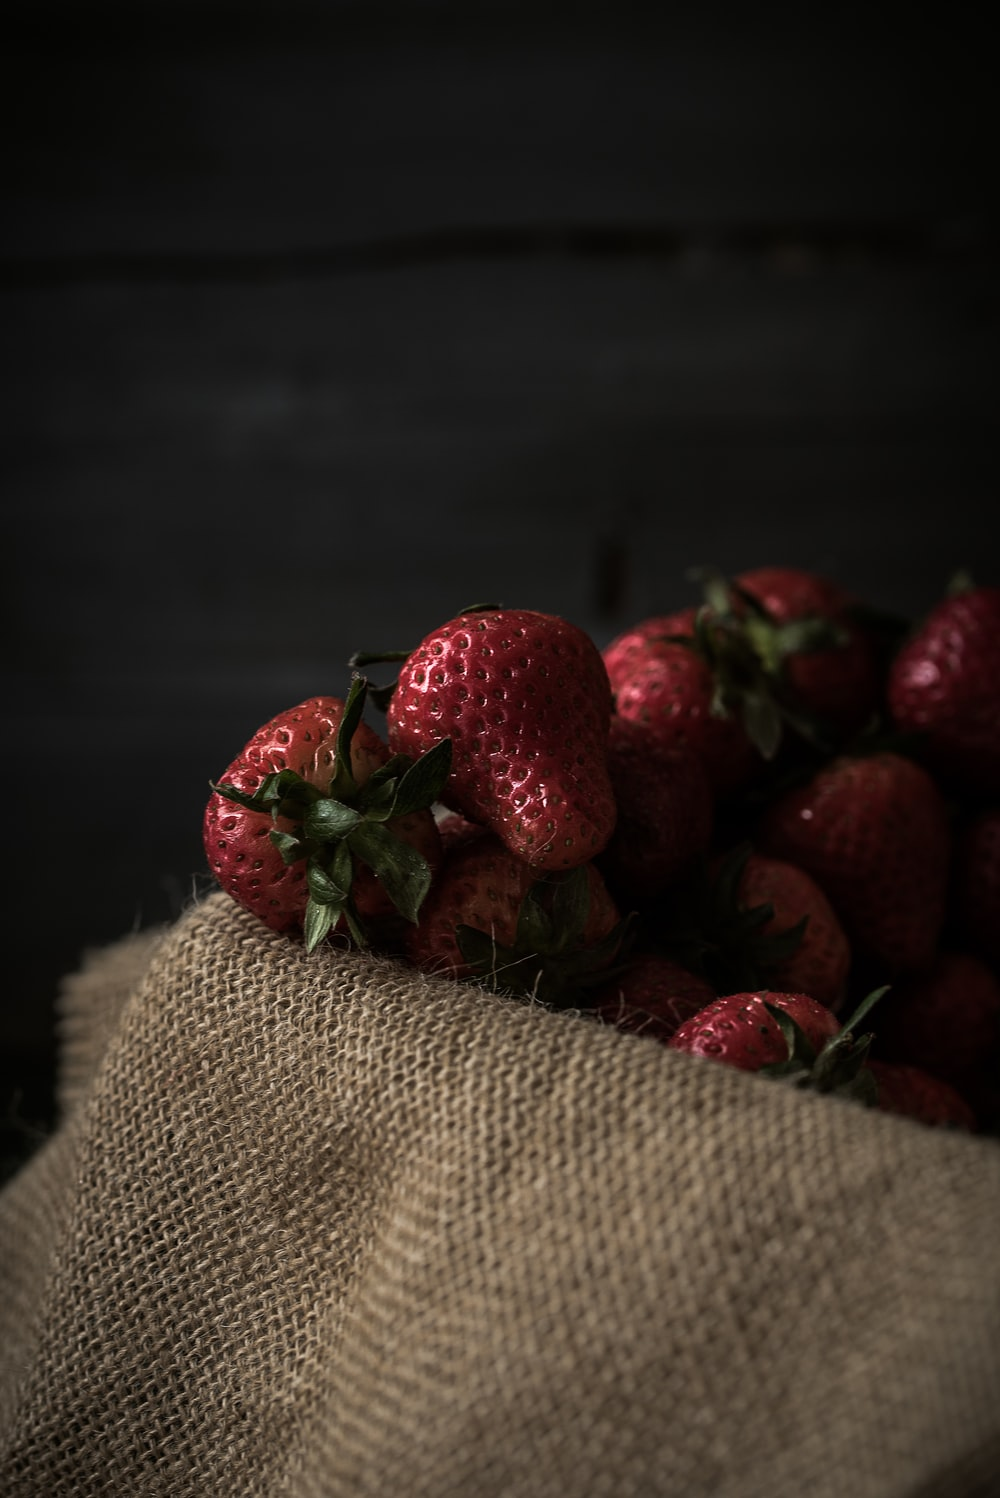 strawberries on brown textile